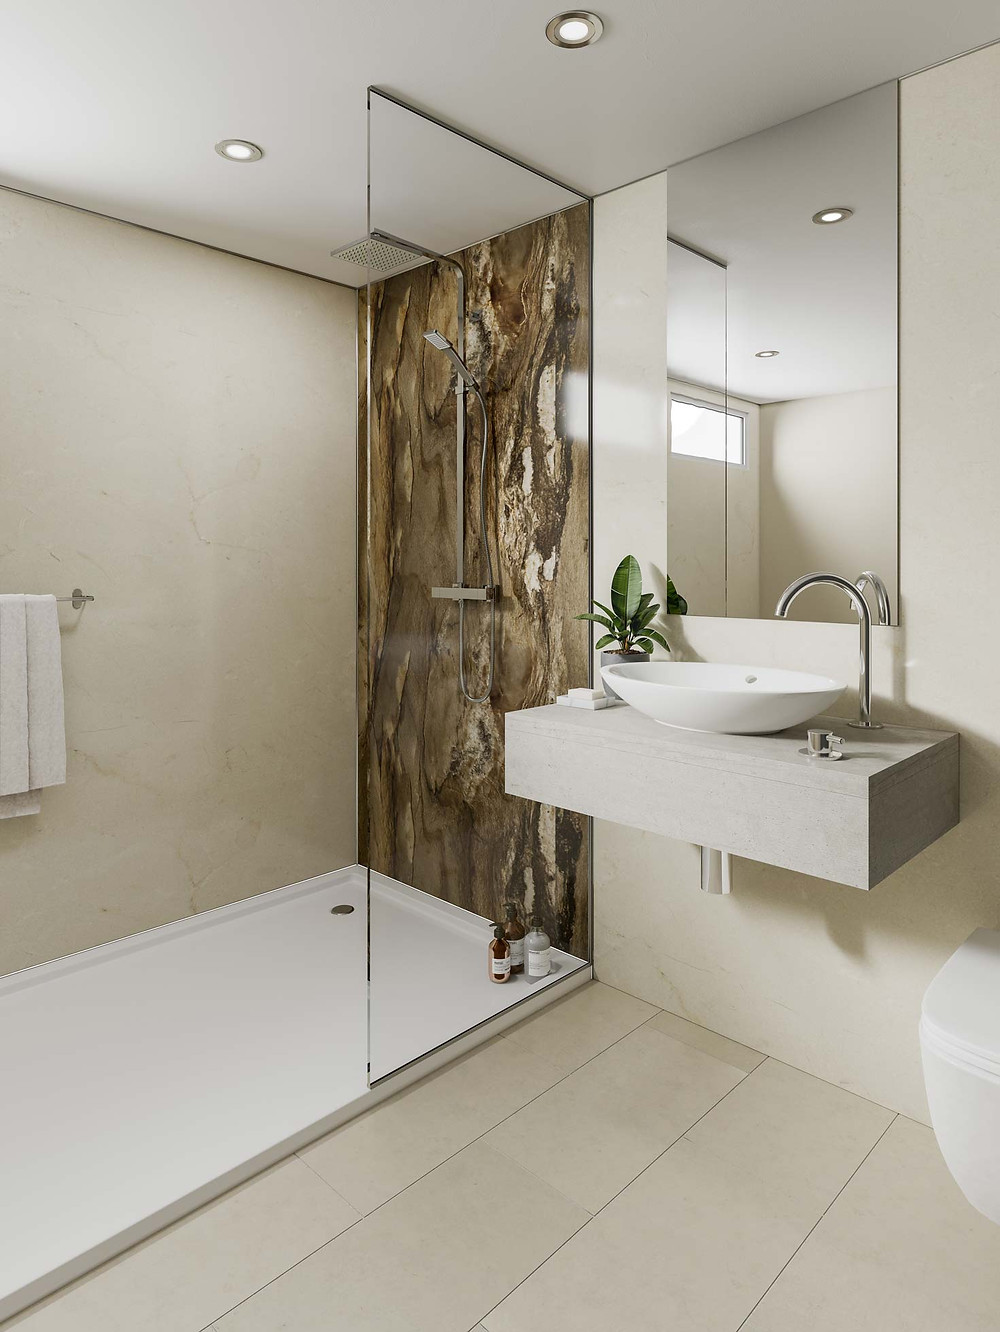 Wall mounted bathroom vanity, with shower base and wet wall panels inside the shower area.